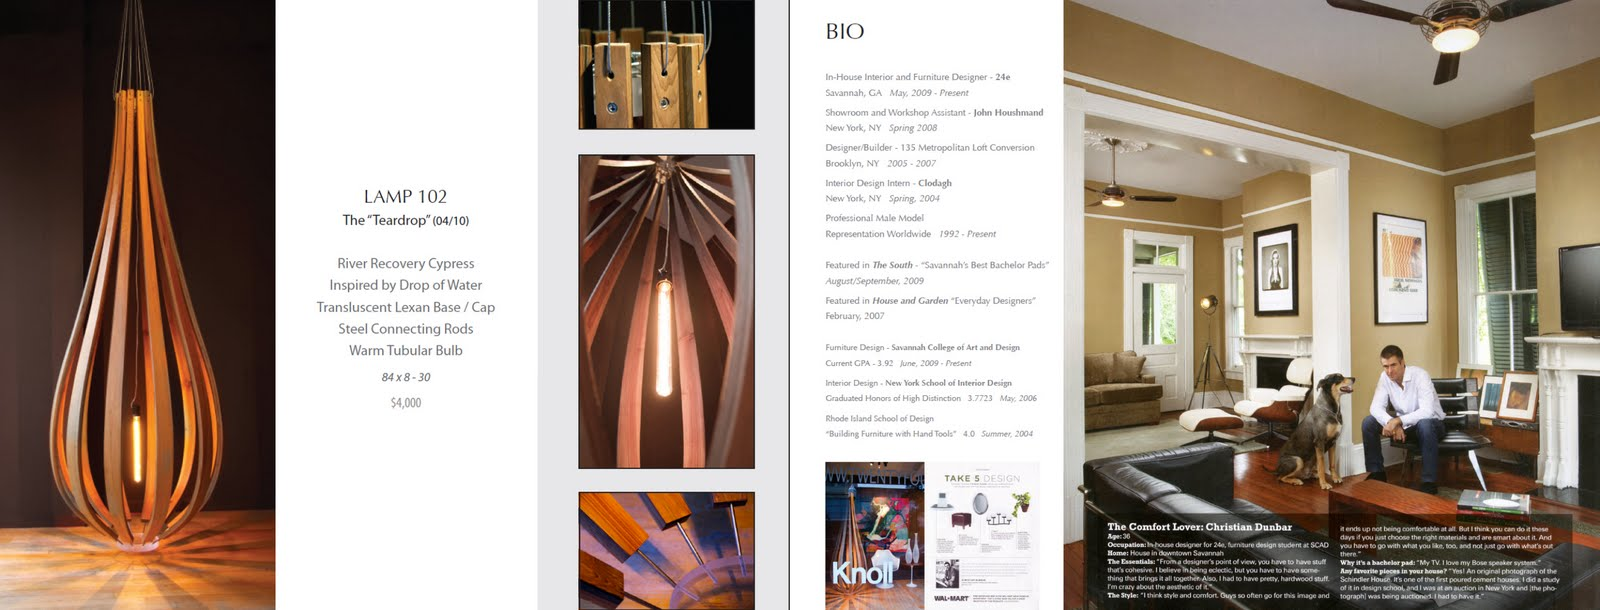 For project 3, I designed a portfolio consisting of a front and back cover, 2 furniture pieces, 2 interior spaces, a light, and a biography page.